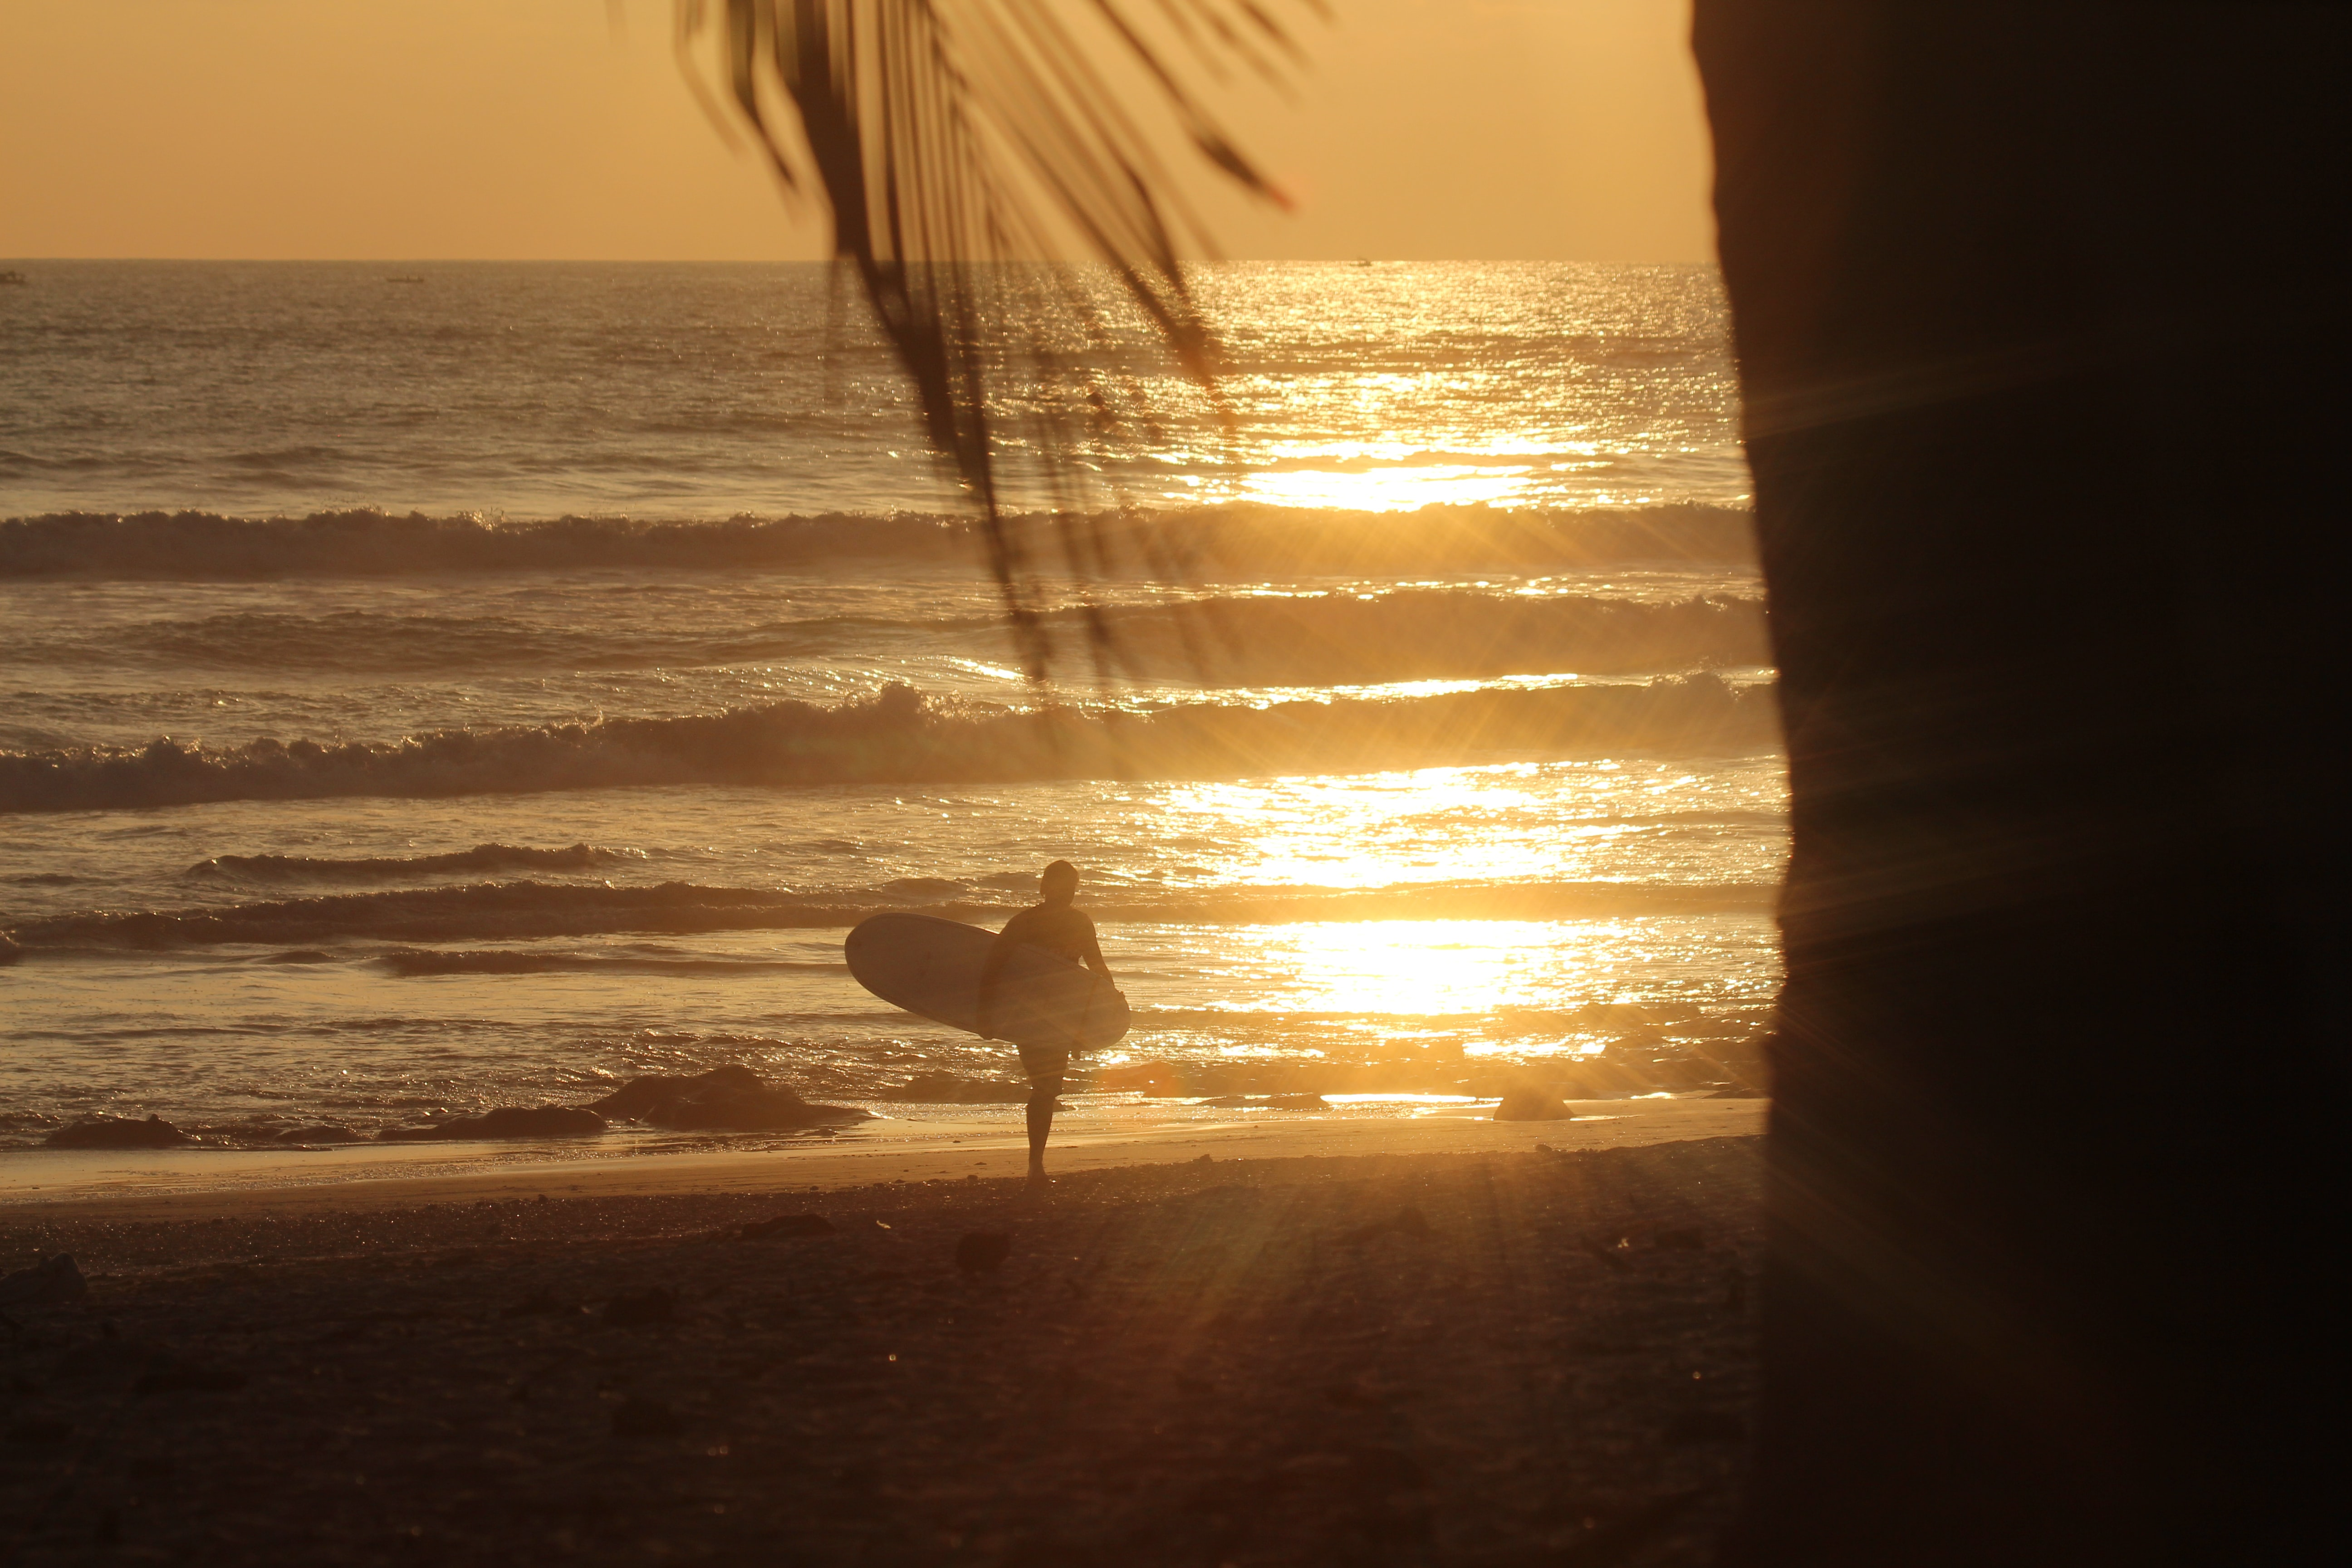 A surfer leaving the sea at sunset, carrying his board as the sun sets in the distance behind